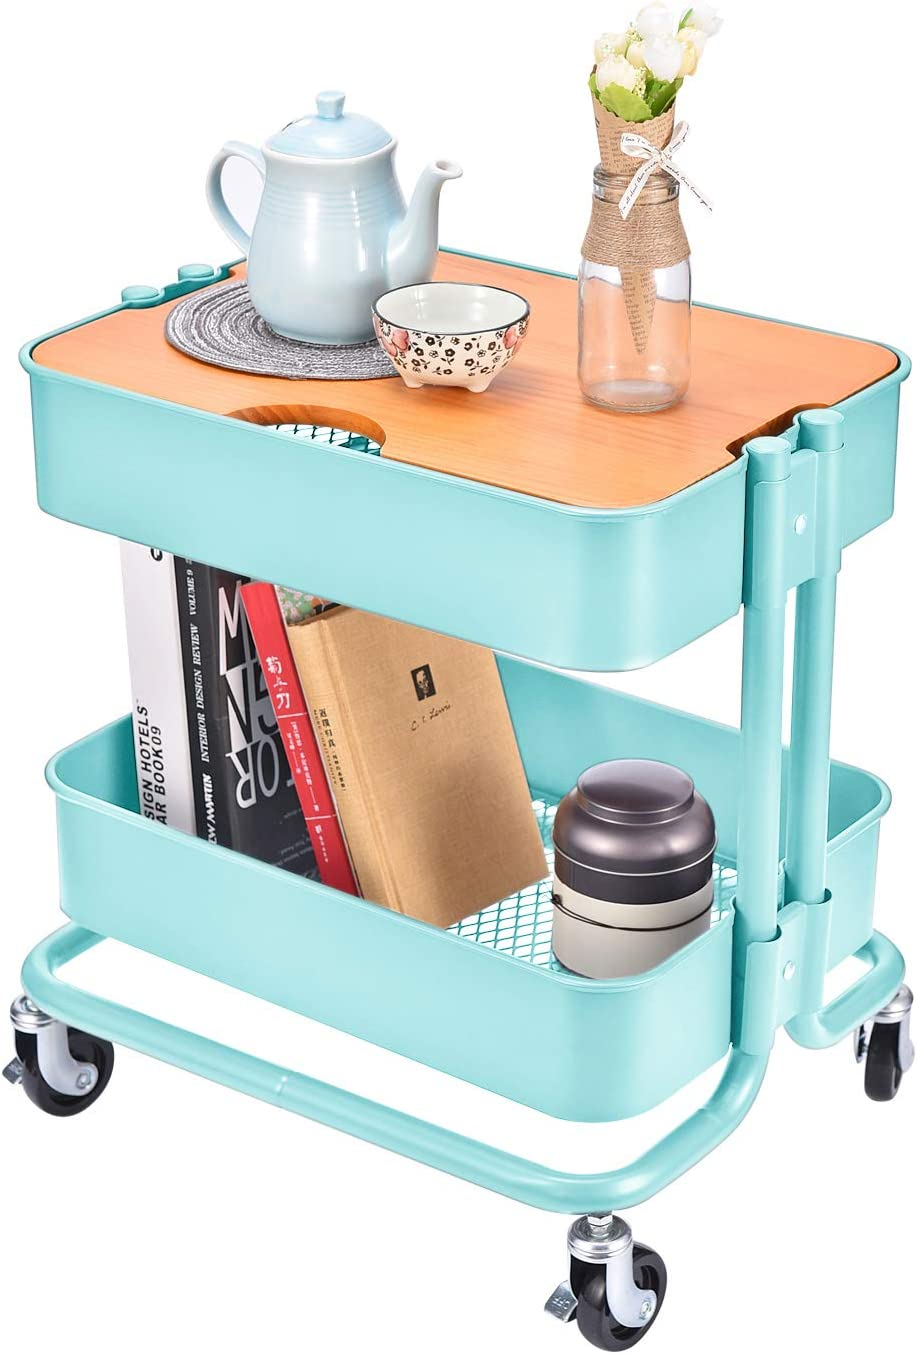 2-Tier Metal Utility Rolling Cart Storage Side End Table with Cover Board for Office Home Kitchen Organization, Turquoise